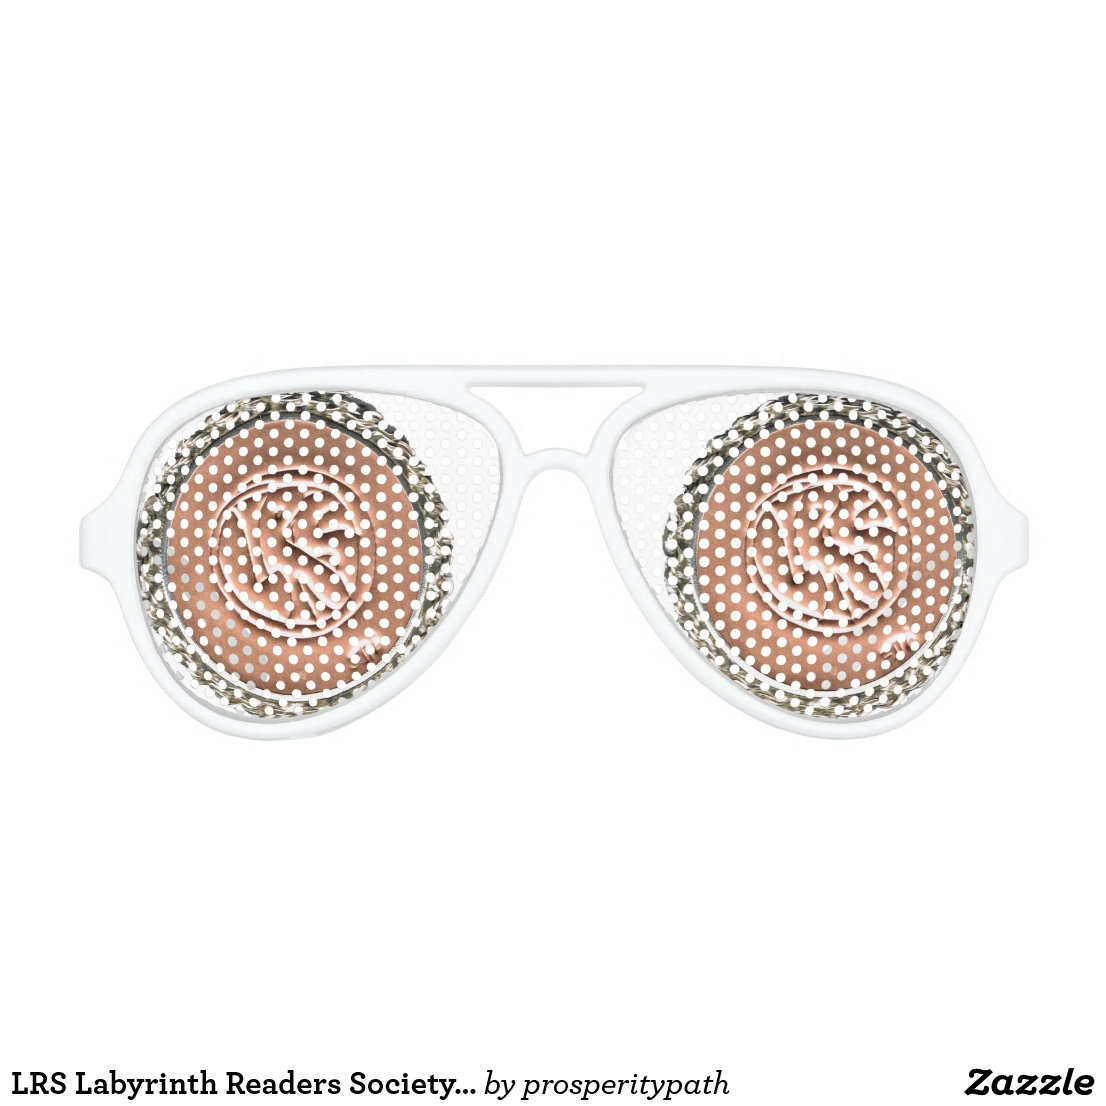 LRS Labyrinth Readers Society Sunglasses